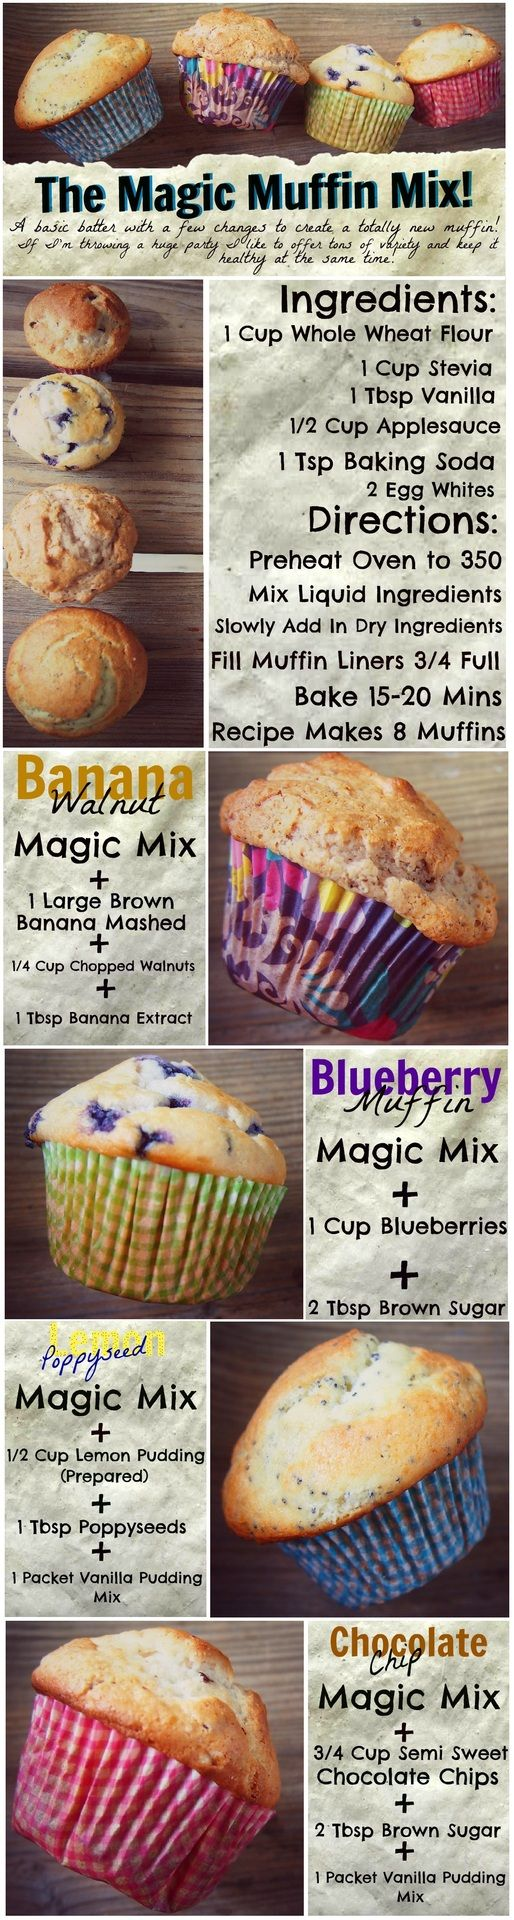 Muffin Magic Mix